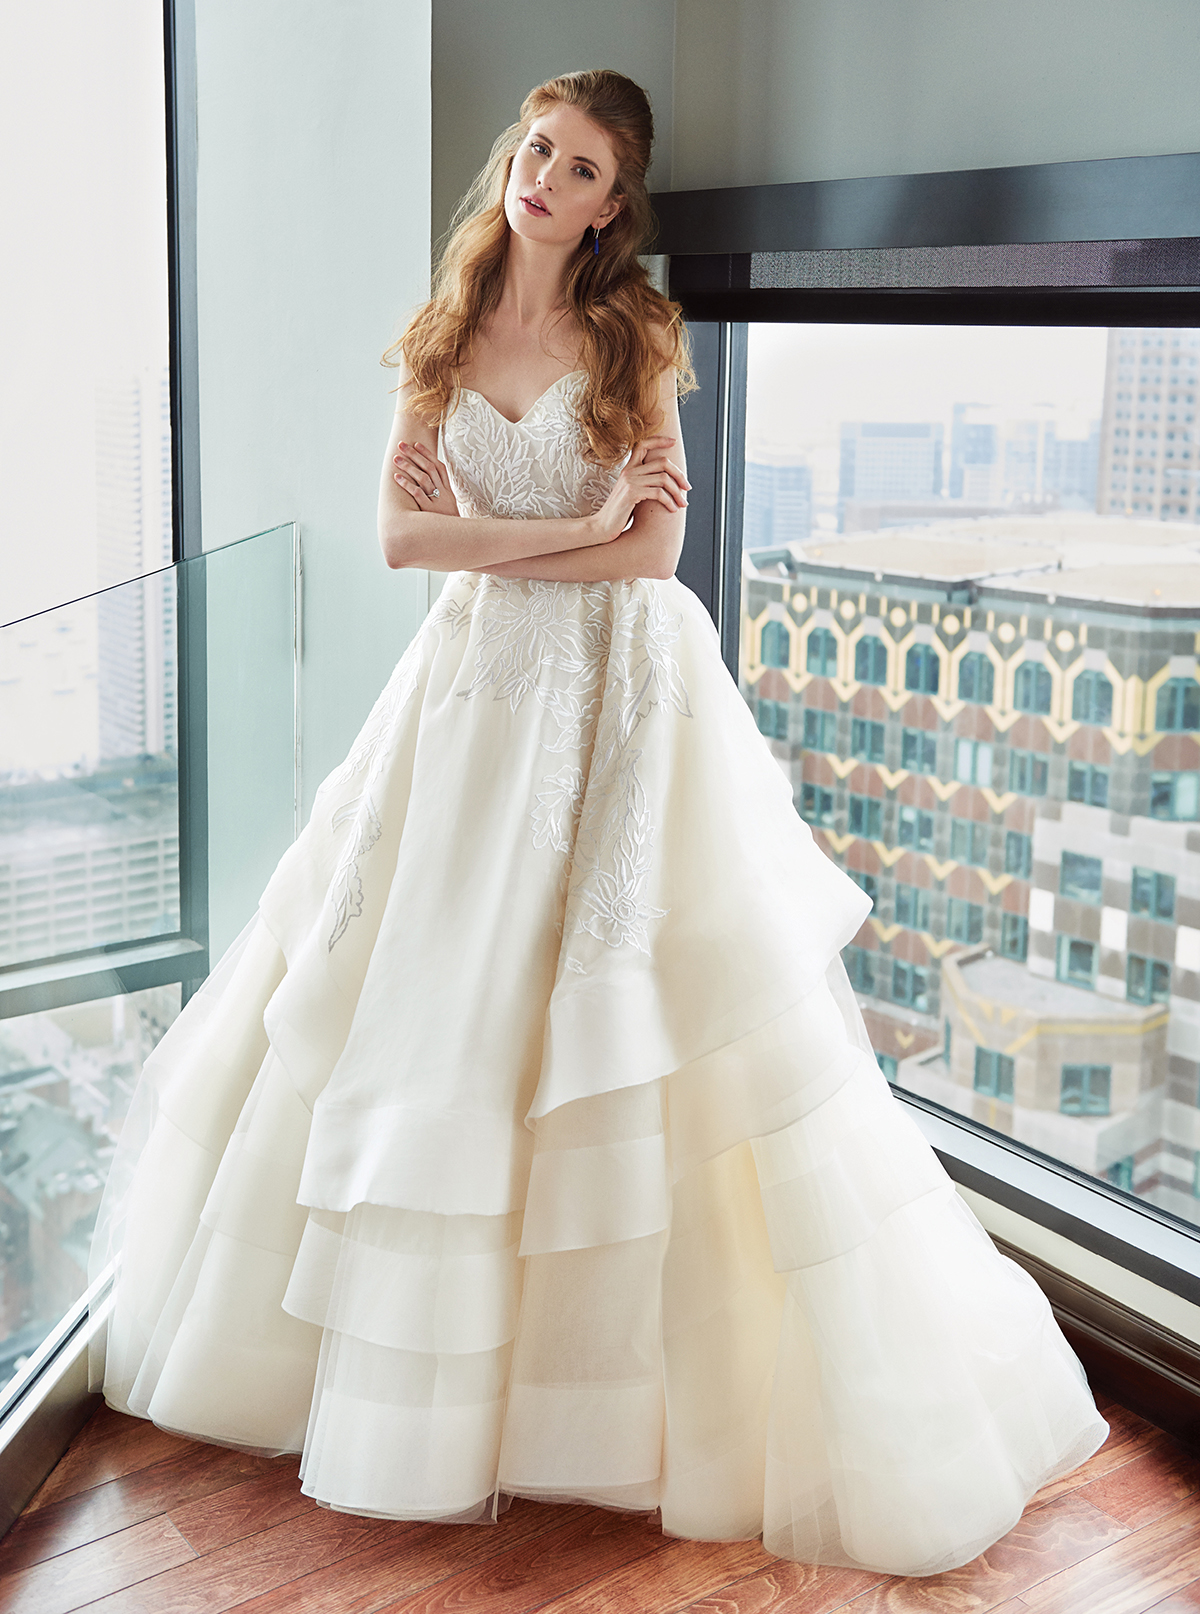 Up in the Air: Boston Weddings\' Fall 2017 Fashion Feature